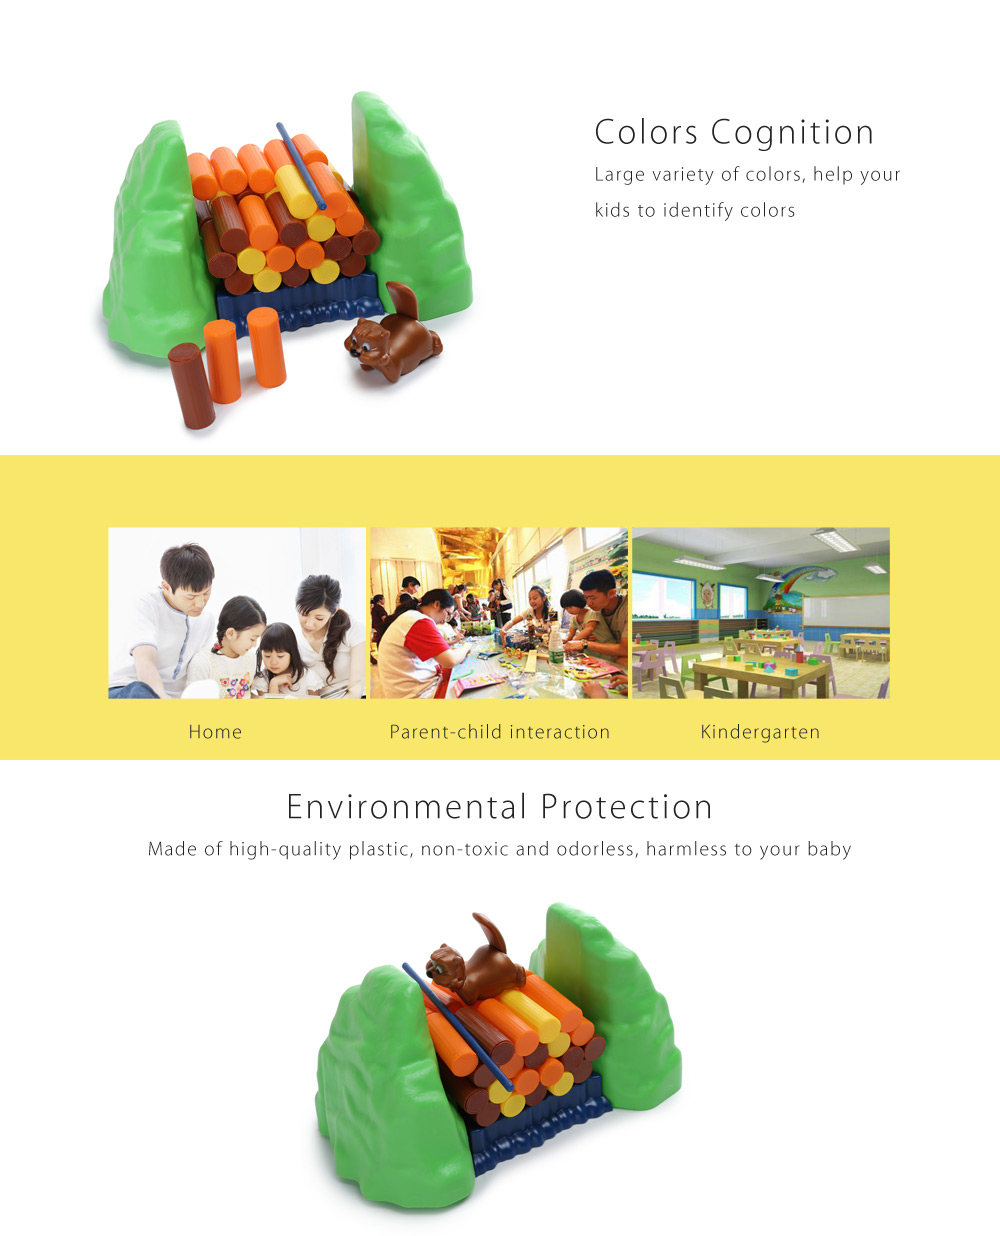 Colorful Balance Rolling Log Patience Training Education Toy for Baby Kids